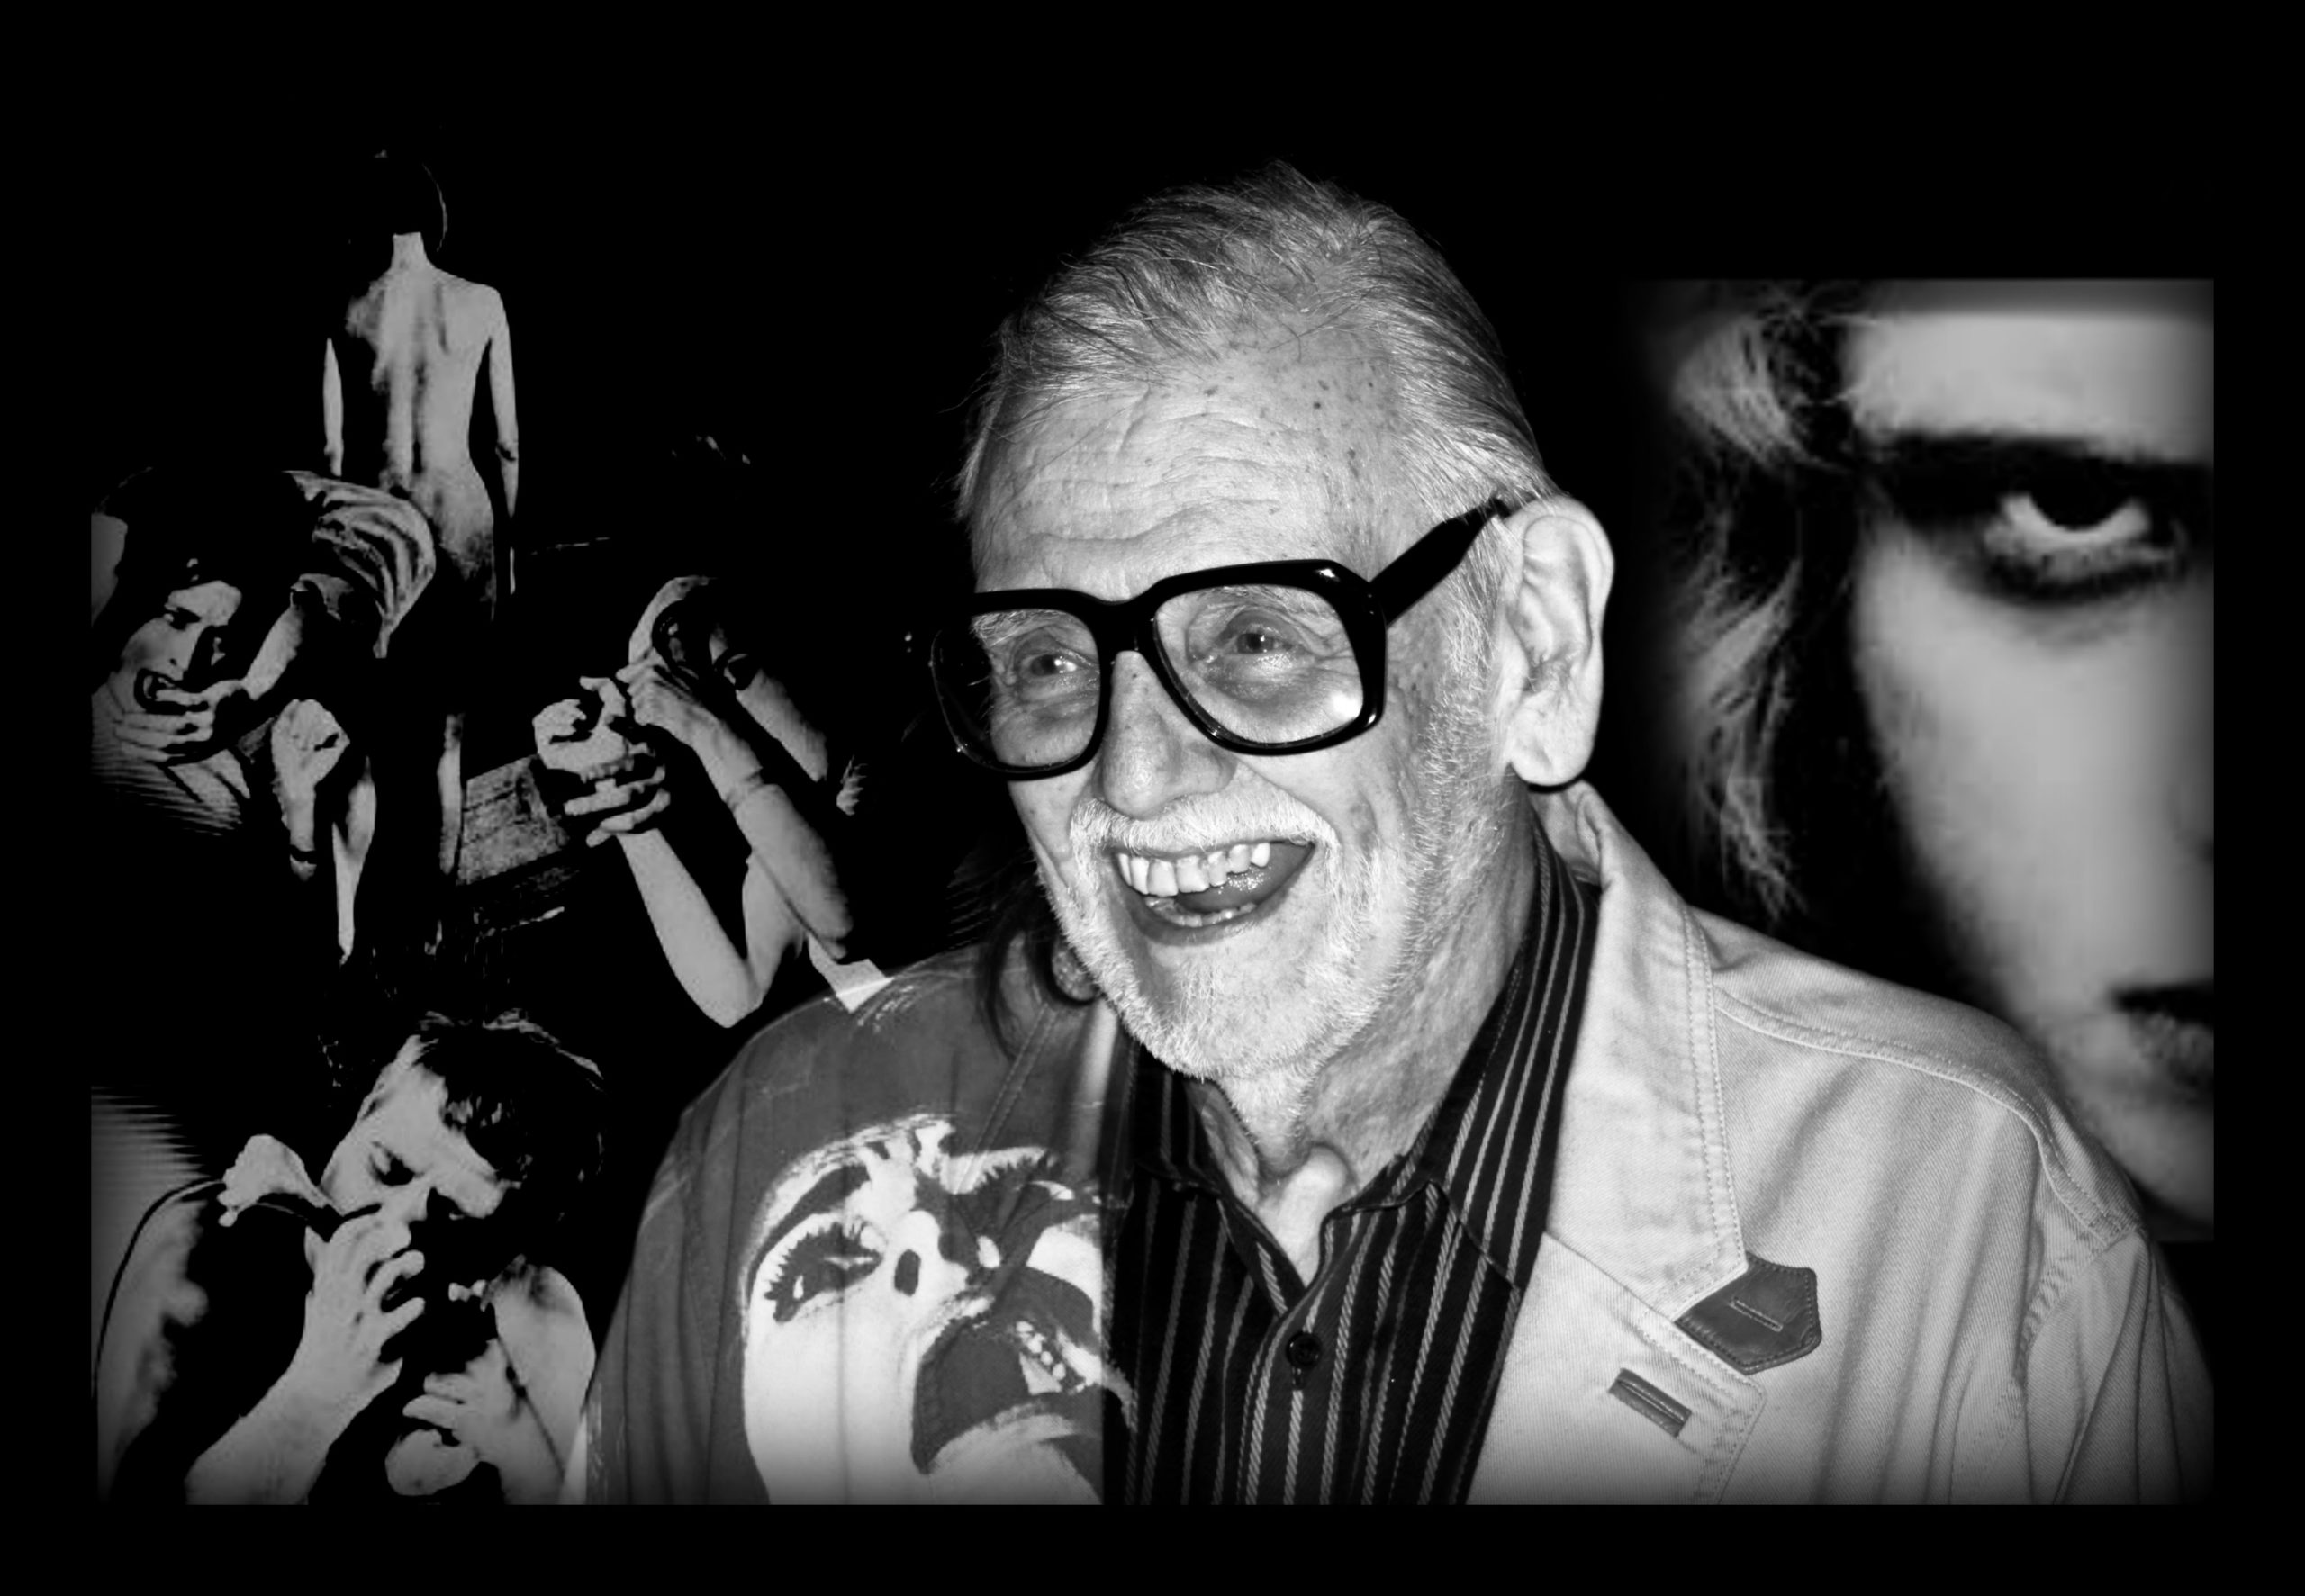 Interview: George Romero Talks 'Night of the Living Dead' in 1972